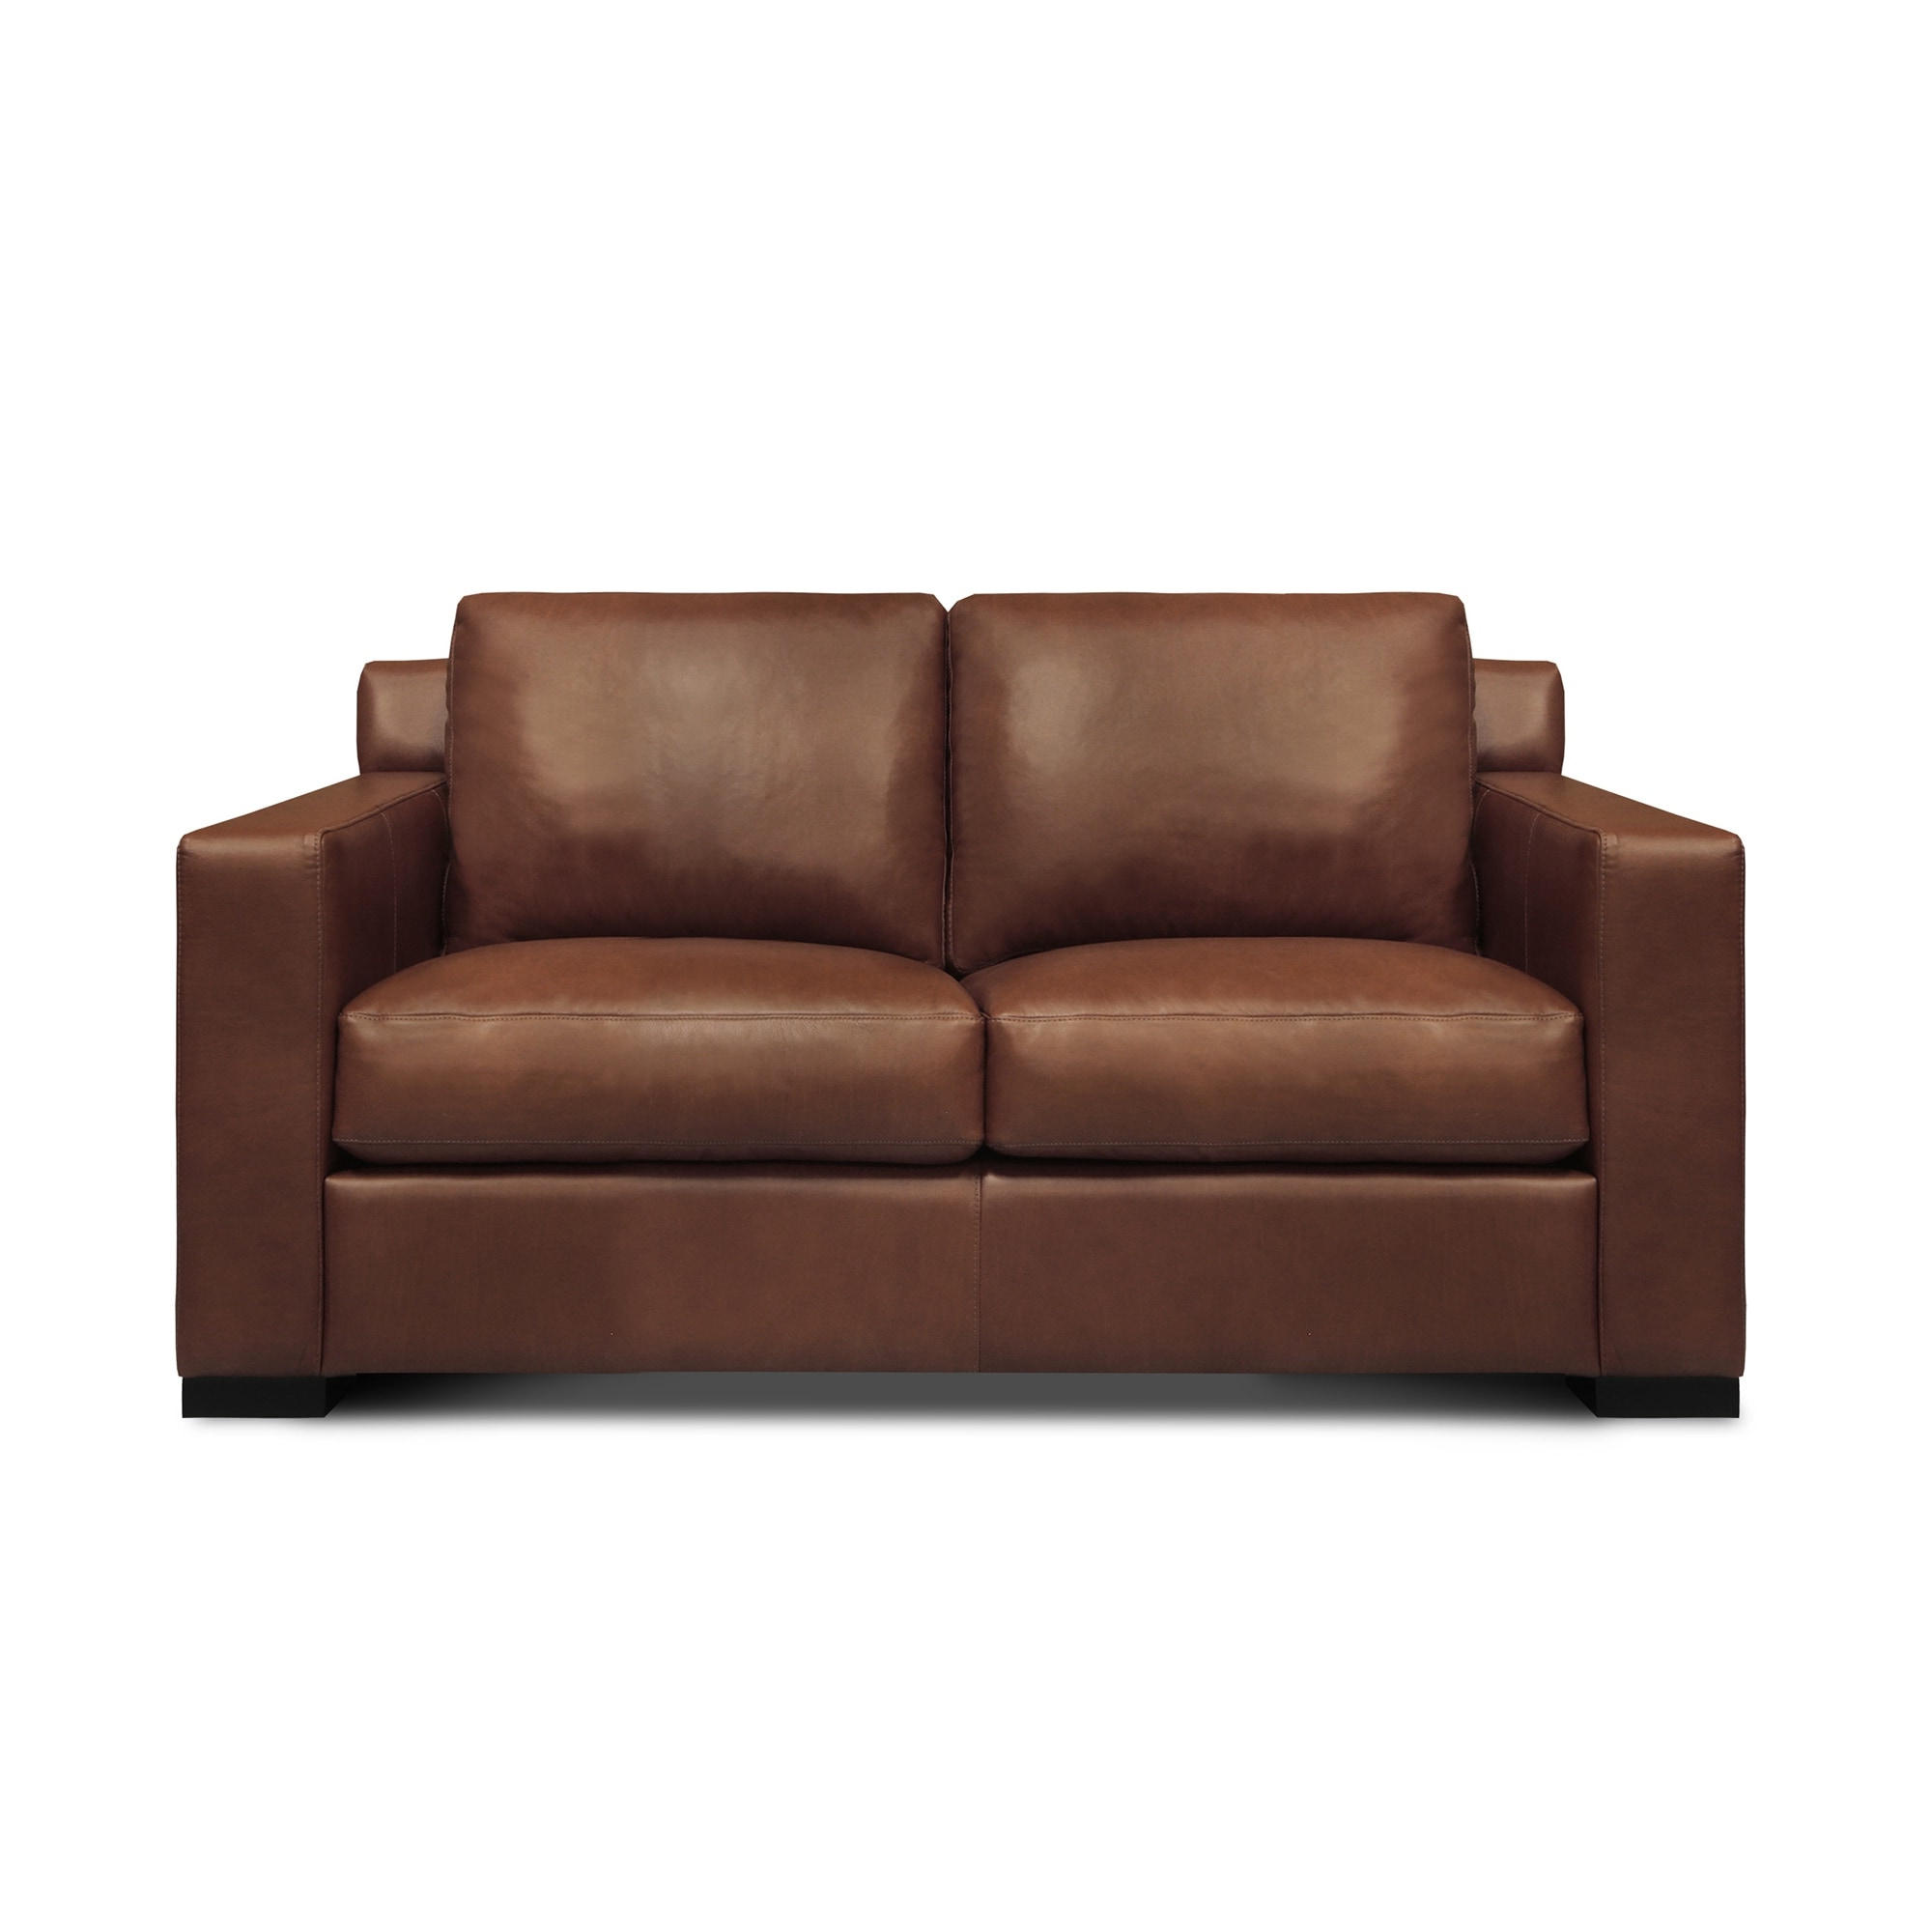 [%100 Top Grain Italian Leather Sofa Chaise Lucca American Intended For 2017 Matilda 100% Top Grain Leather Chaise Sectional Sofas|Matilda 100% Top Grain Leather Chaise Sectional Sofas In Trendy 100 Top Grain Italian Leather Sofa Chaise Lucca American|Most Popular Matilda 100% Top Grain Leather Chaise Sectional Sofas Throughout 100 Top Grain Italian Leather Sofa Chaise Lucca American|Well Liked 100 Top Grain Italian Leather Sofa Chaise Lucca American Throughout Matilda 100% Top Grain Leather Chaise Sectional Sofas%] (View 4 of 25)